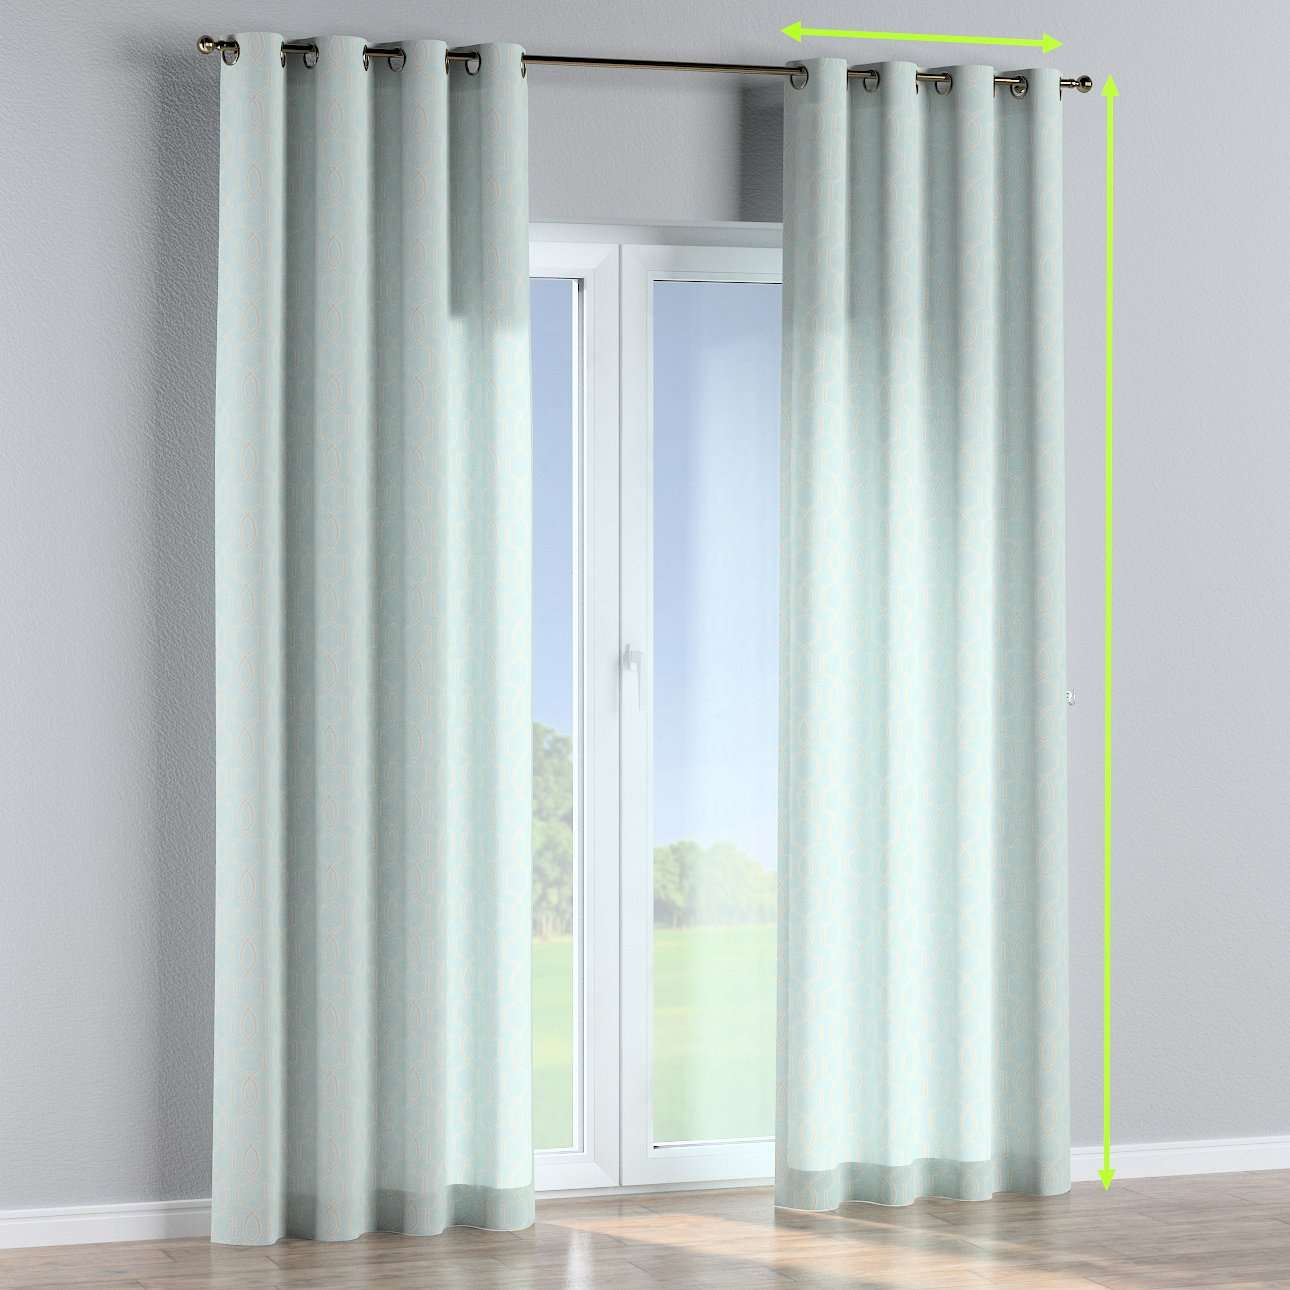 Eyelet curtains in collection Comics/Geometrical, fabric: 141-24